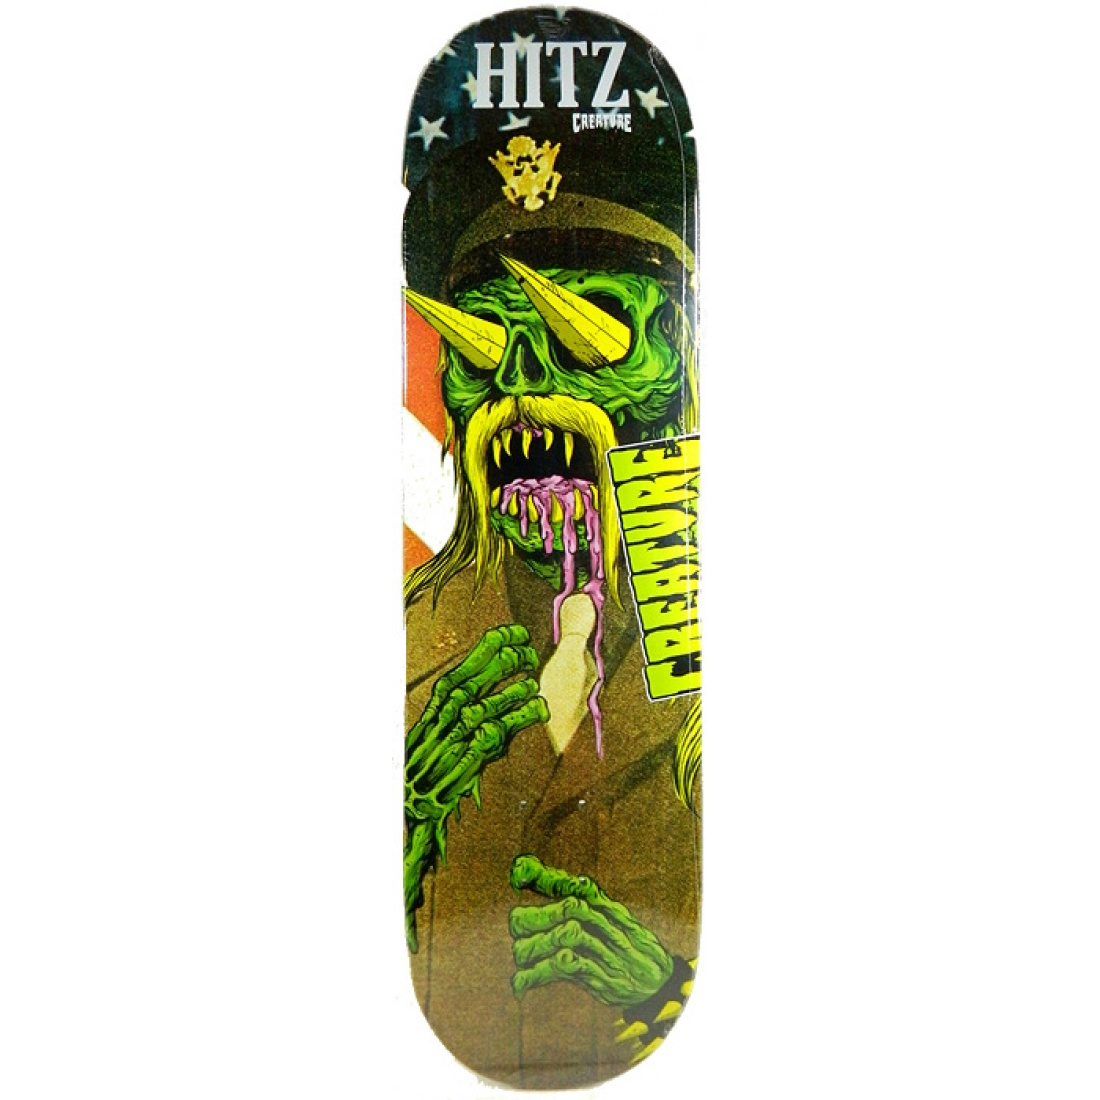 CRT-Hitz Creeps Powerply 8.25 Deck